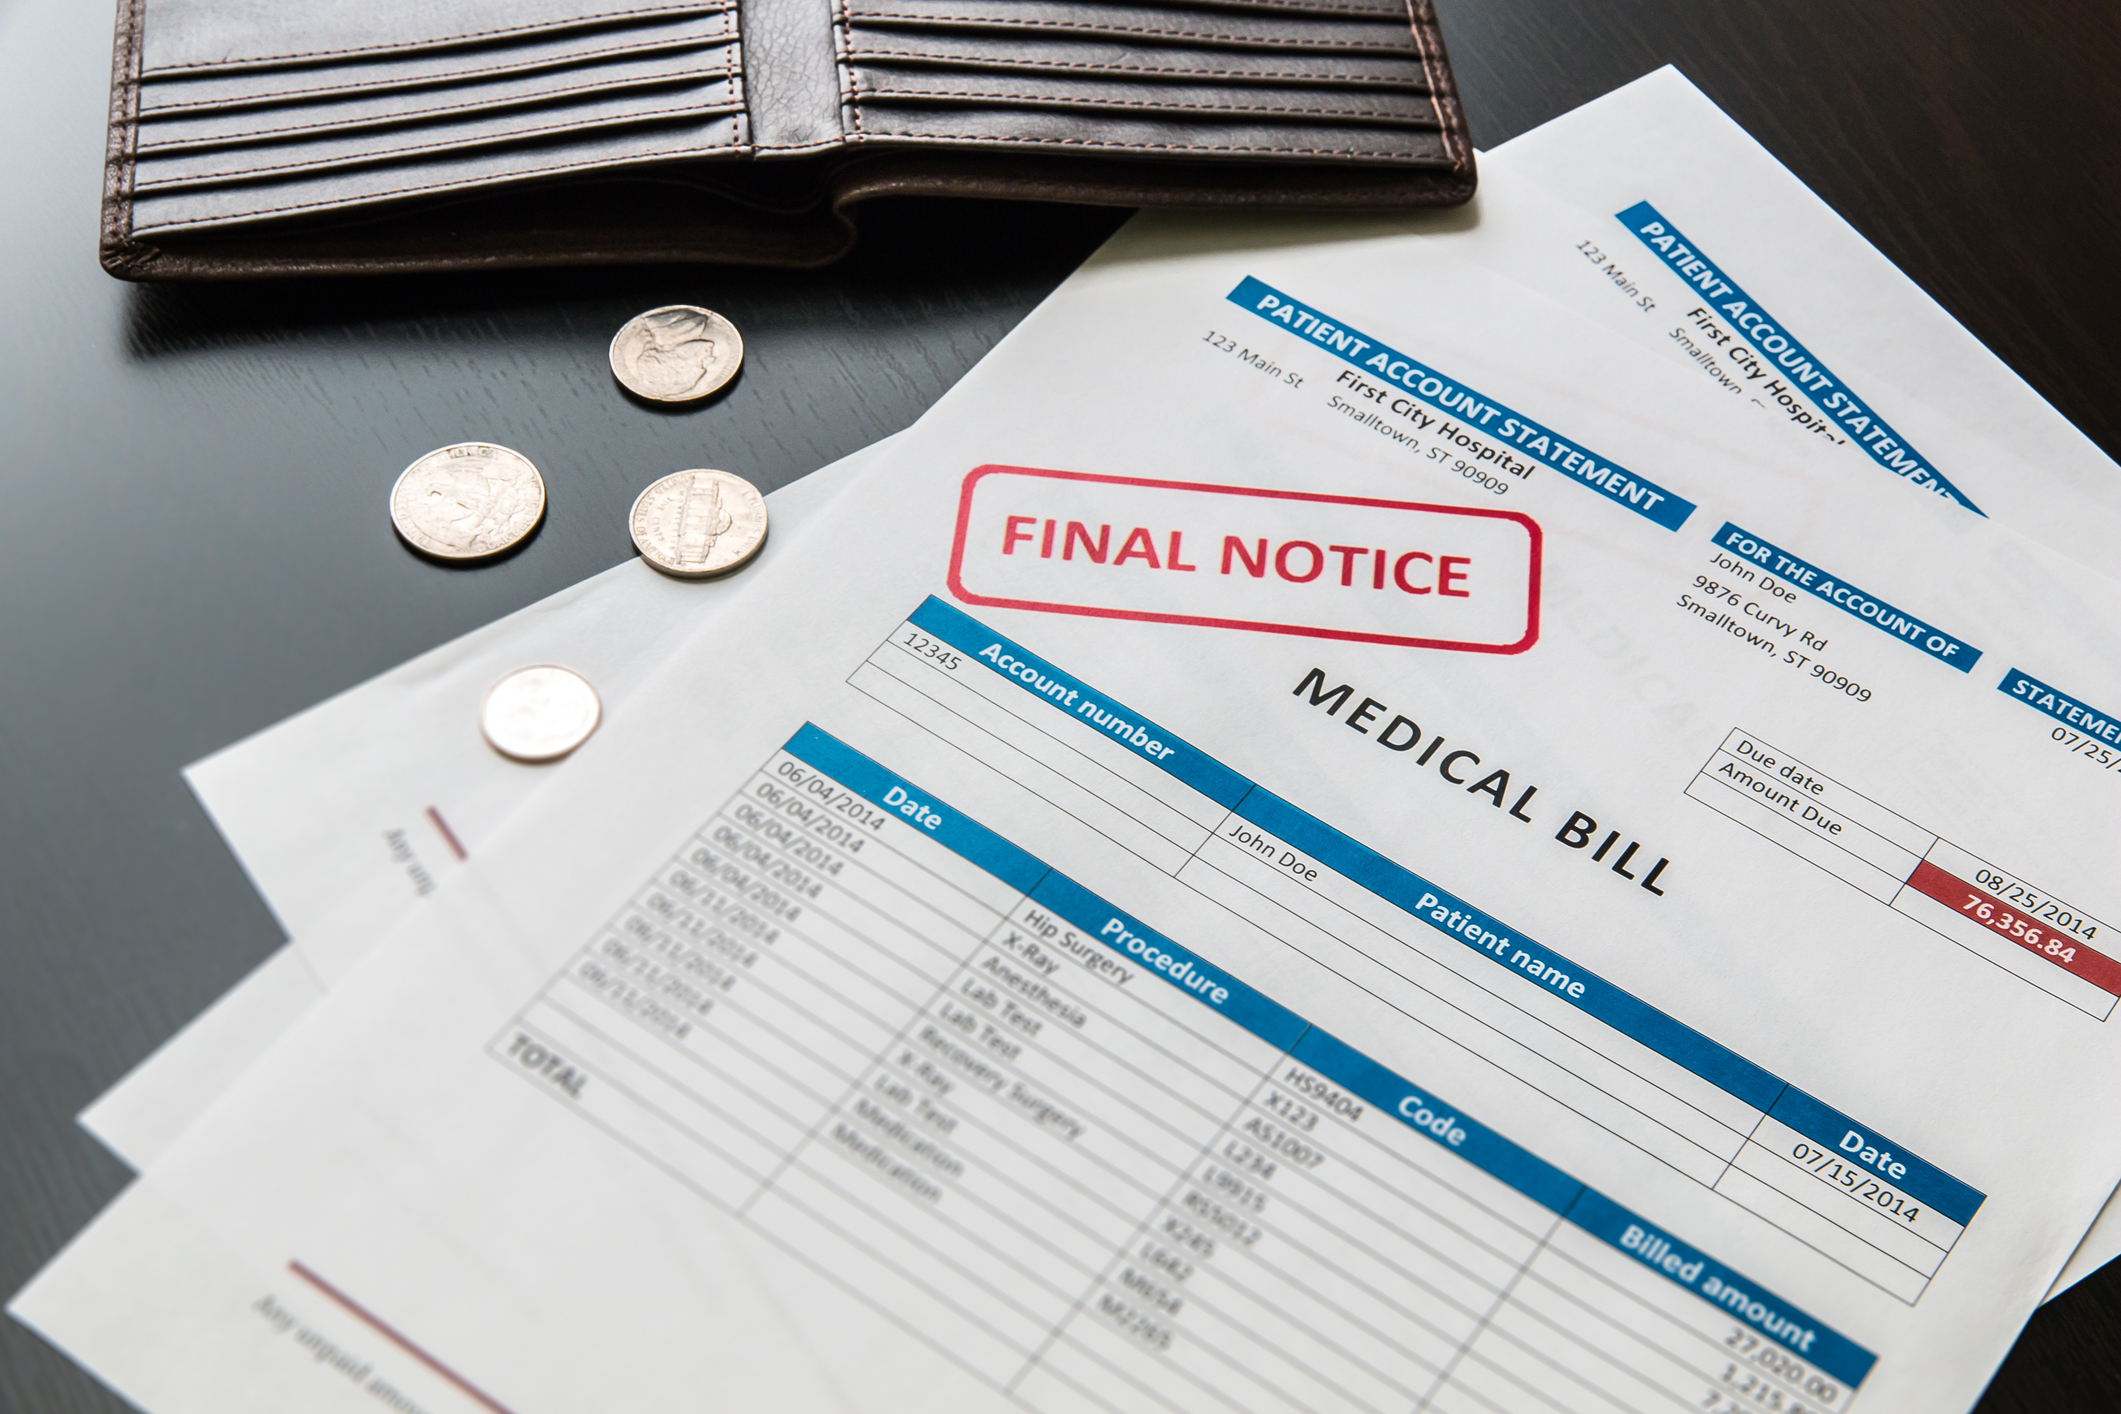 Before you respond to a medical debt lawsuit, take these 10